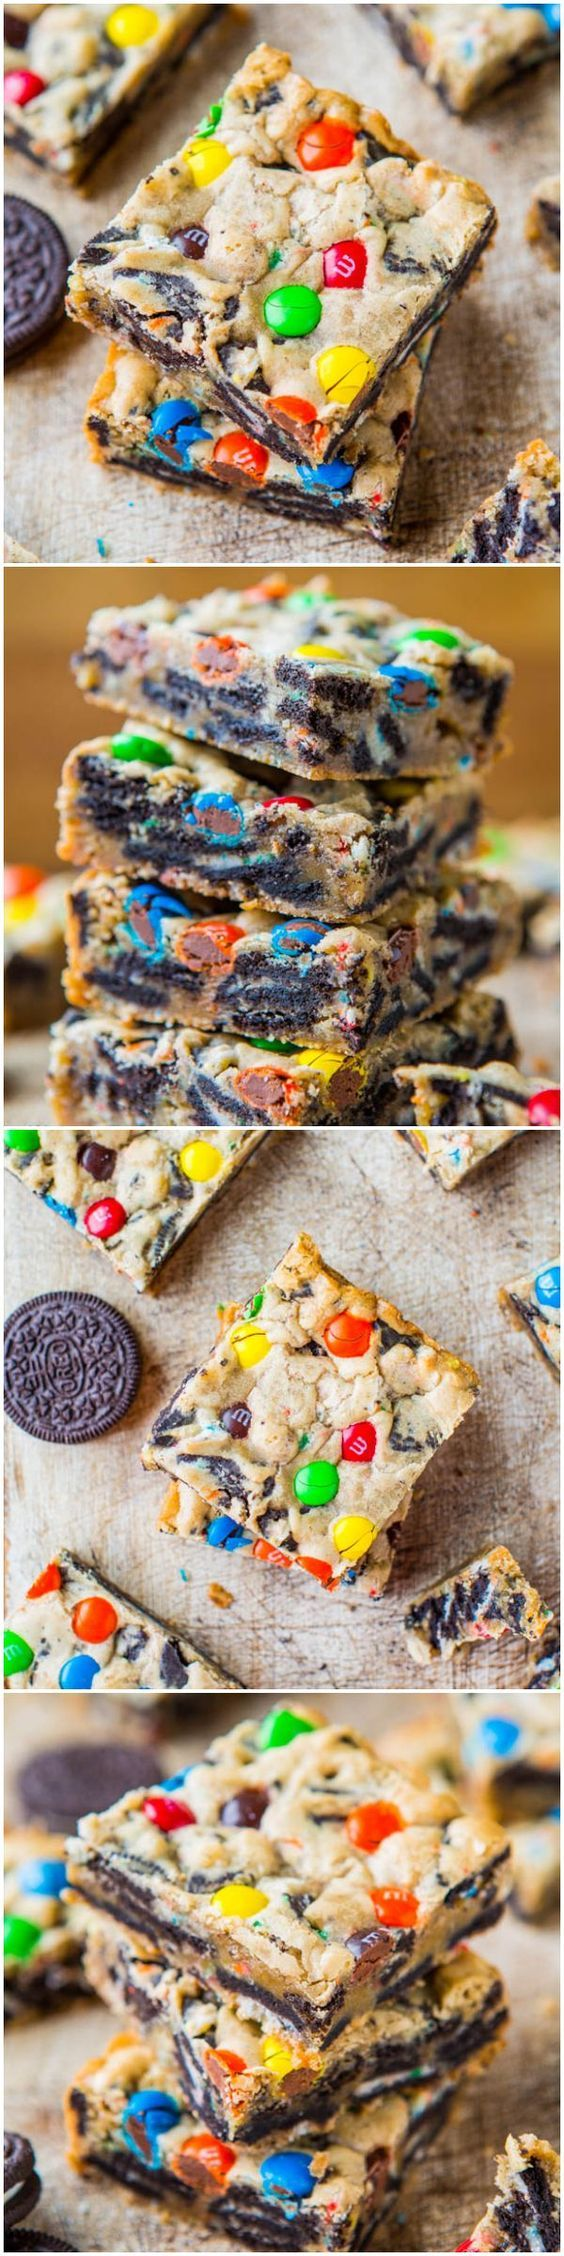 Loaded MandM Oreo Cookie Bars - Stuffed to the max with MandMs and Oreos! Easy no-mixer recipe that's ready in 30 minutes for last minute needs. Always a hit at parties!